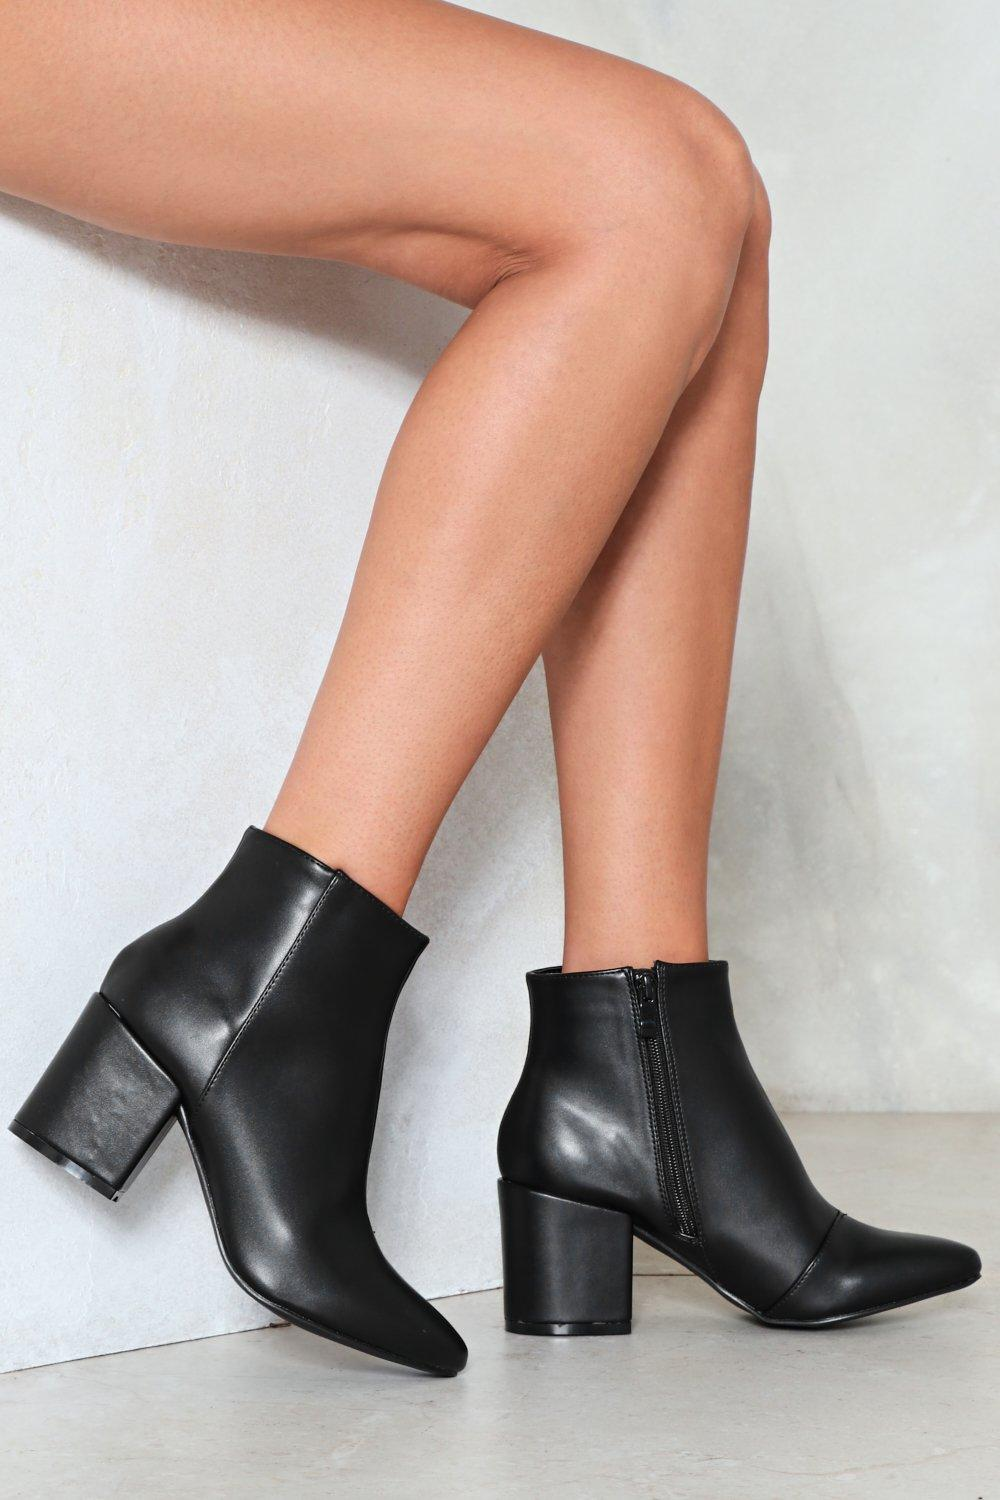 c1957580fb32 Womens Black Simple Faux Leather Ankle Bootie